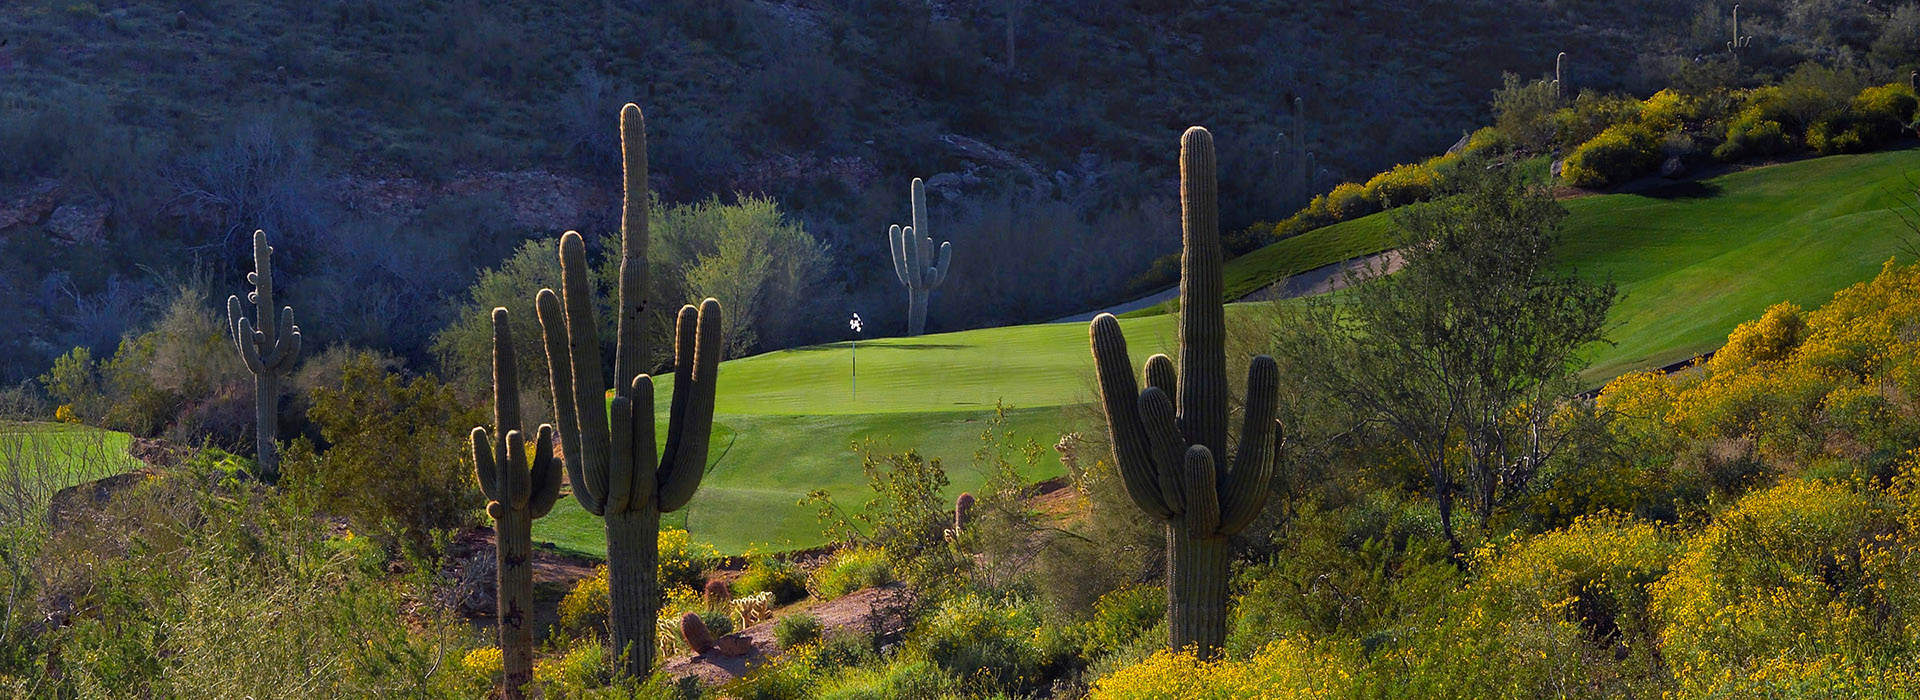 Statement from the Arizona Alliance for Golf